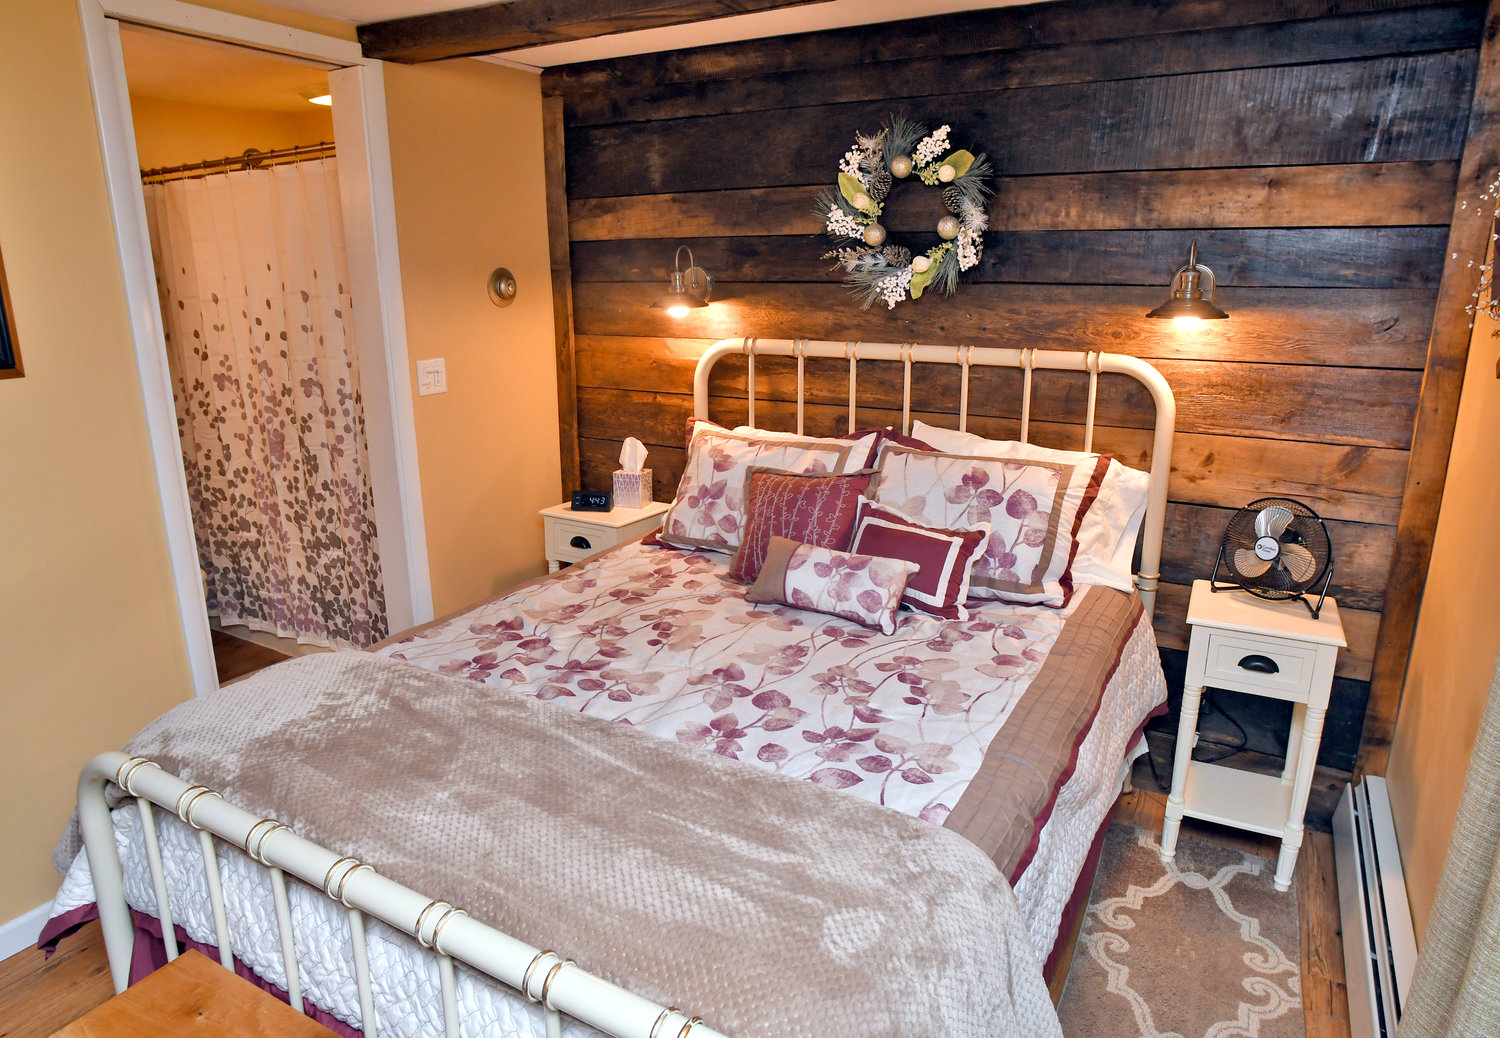 QUAINT SPACE — The bedroom at Beatty Bed and Biscuit, 21 Beatty Ave., Clinton, features a queen size bed with comfortable foam mattress and a wall adorned with original barn wood.  Dogs are invited to sleep there as well.